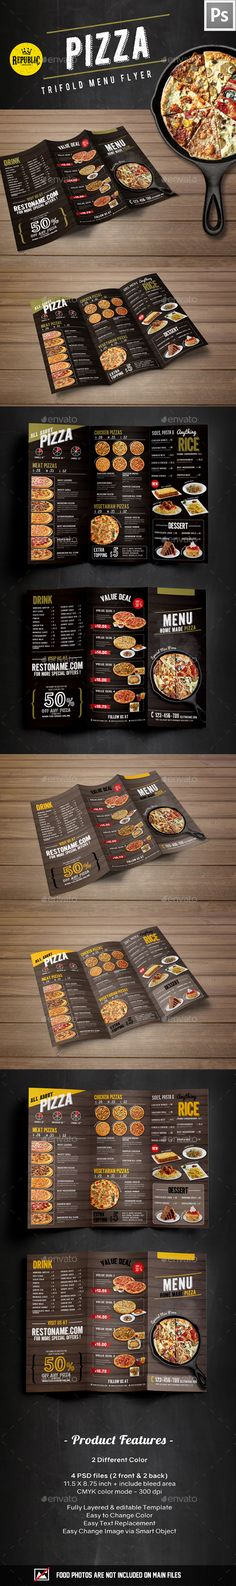 Trifold Pizza Menu Template PSD. Download here: http://graphicriver.net/item/trifold-pizza-menu/15646337?ref=ksioks